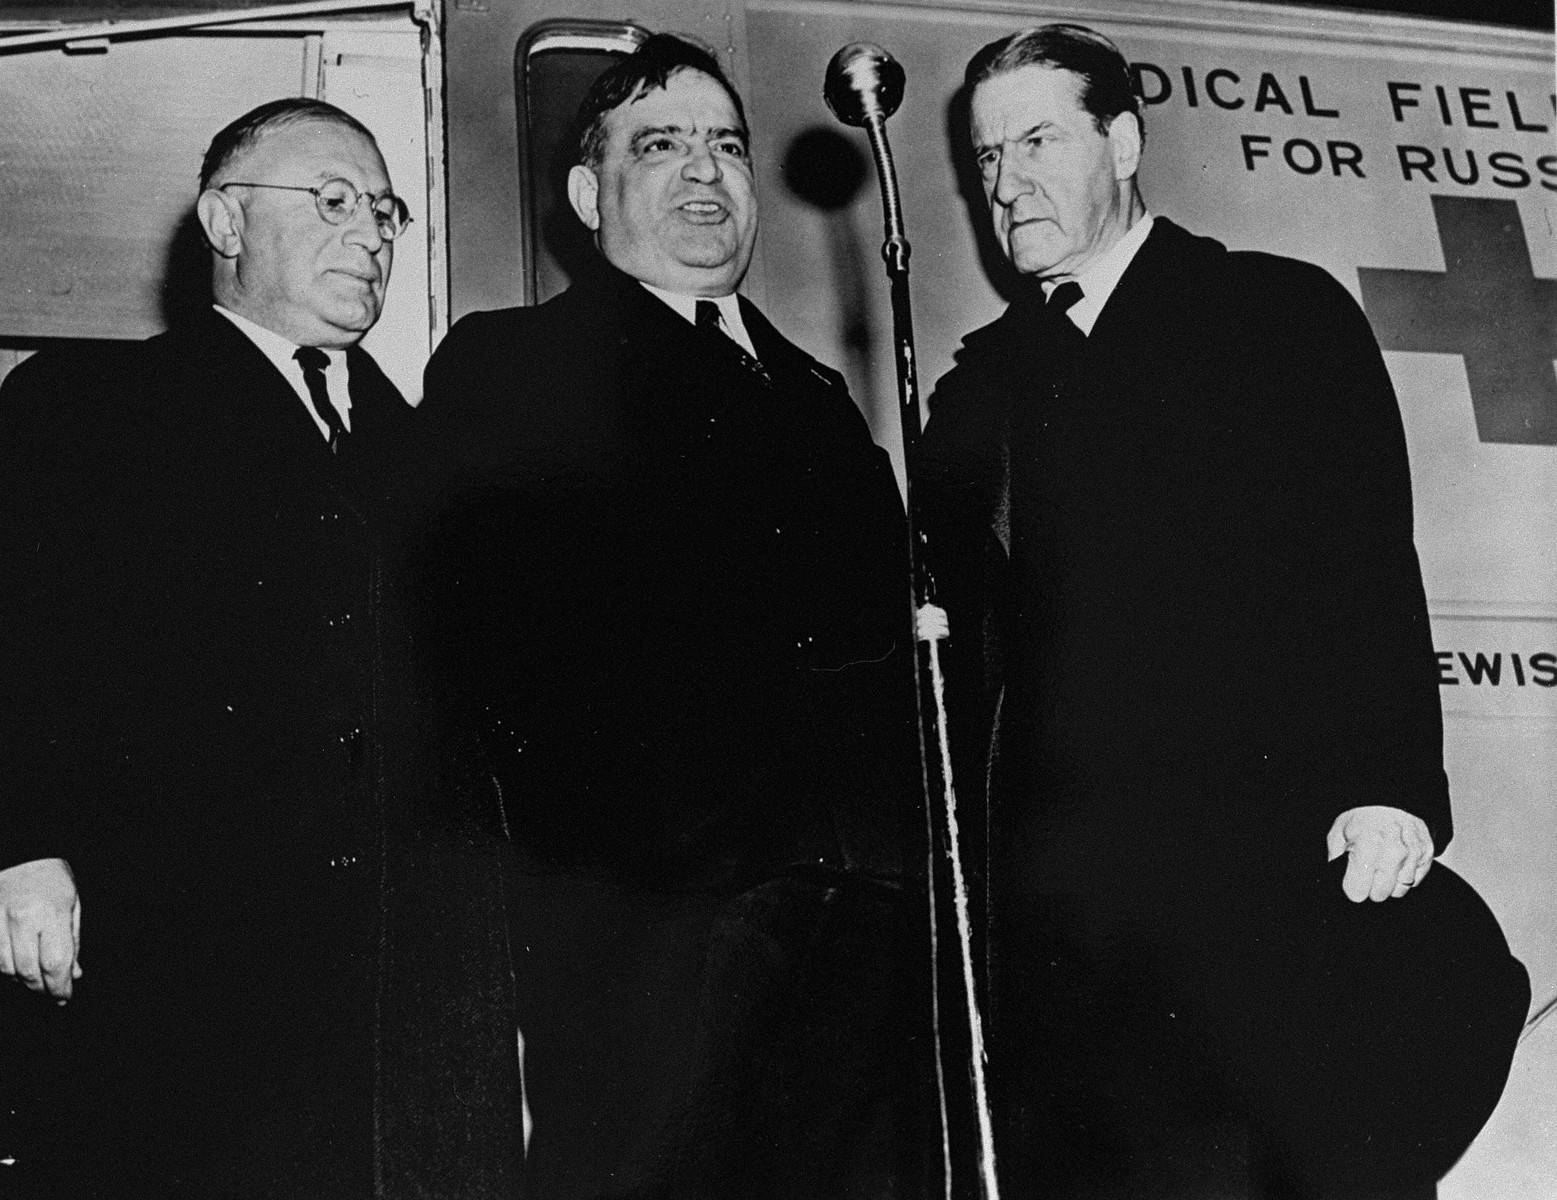 Dr. Joseph Tenenbaum (center) stands with Fiorello LaGuardia (left) and Rabbi Stephen S. Wise (right) in front of a medical field unit sponsored by the United Jewish War Effort that is being sent to the Soviet Union.